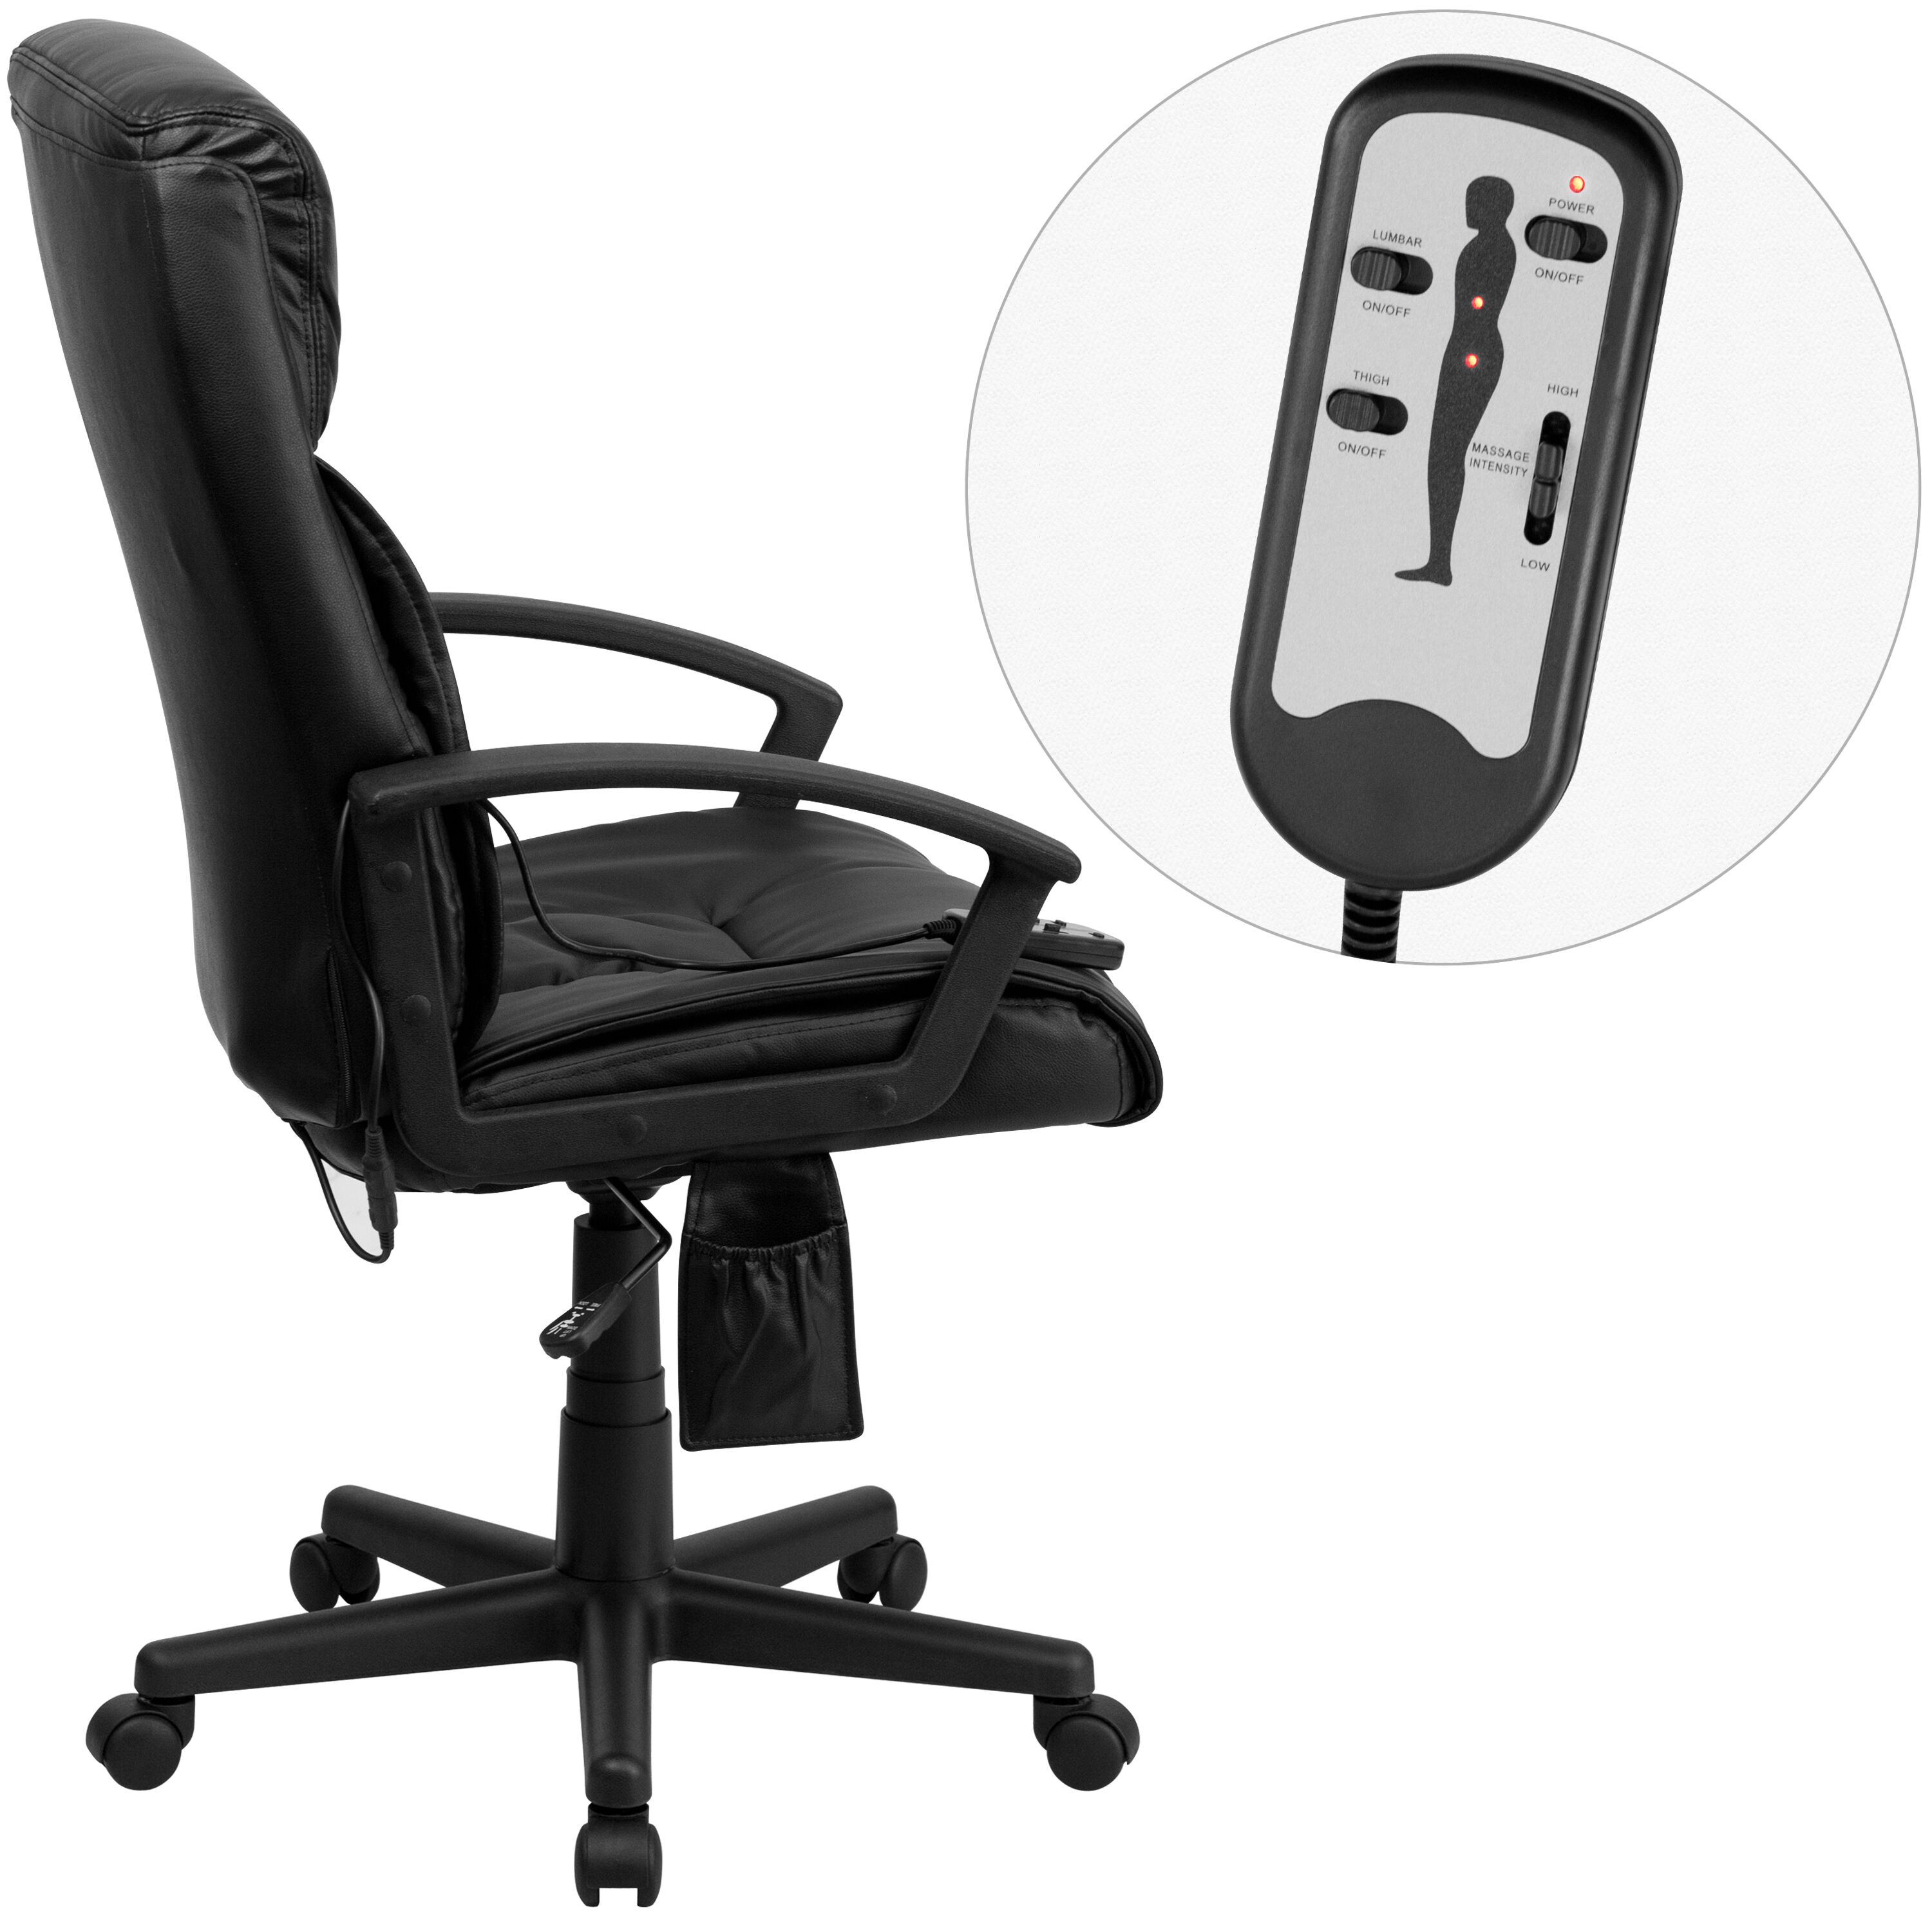 Massage Office Chair High Back Ergonomic Massaging Black Leather Executive Swivel Office Chair With Side Remote Pocket And Arms